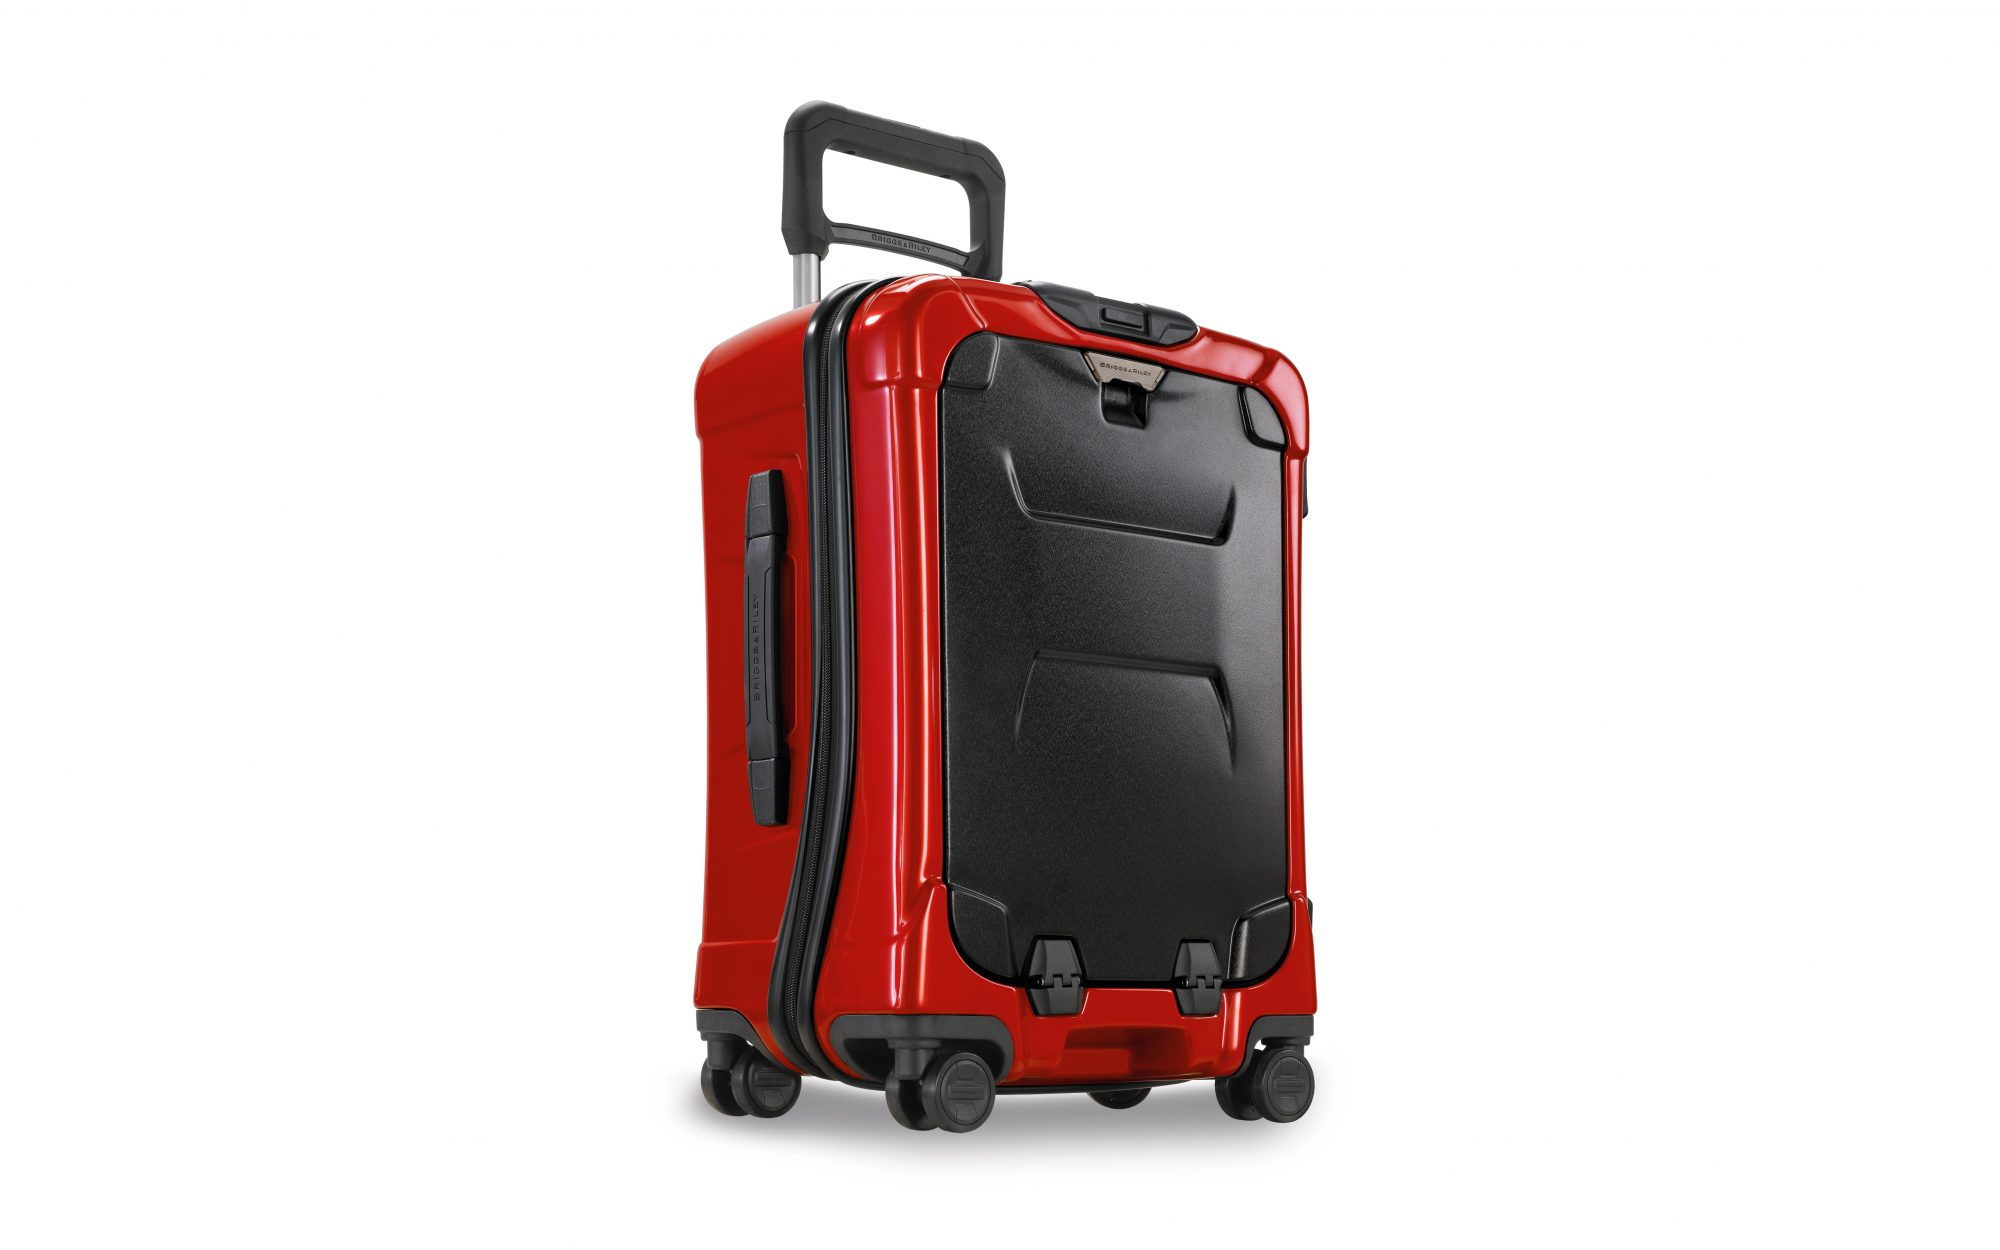 Briggs & Riley Torq International Carry-on Spinner